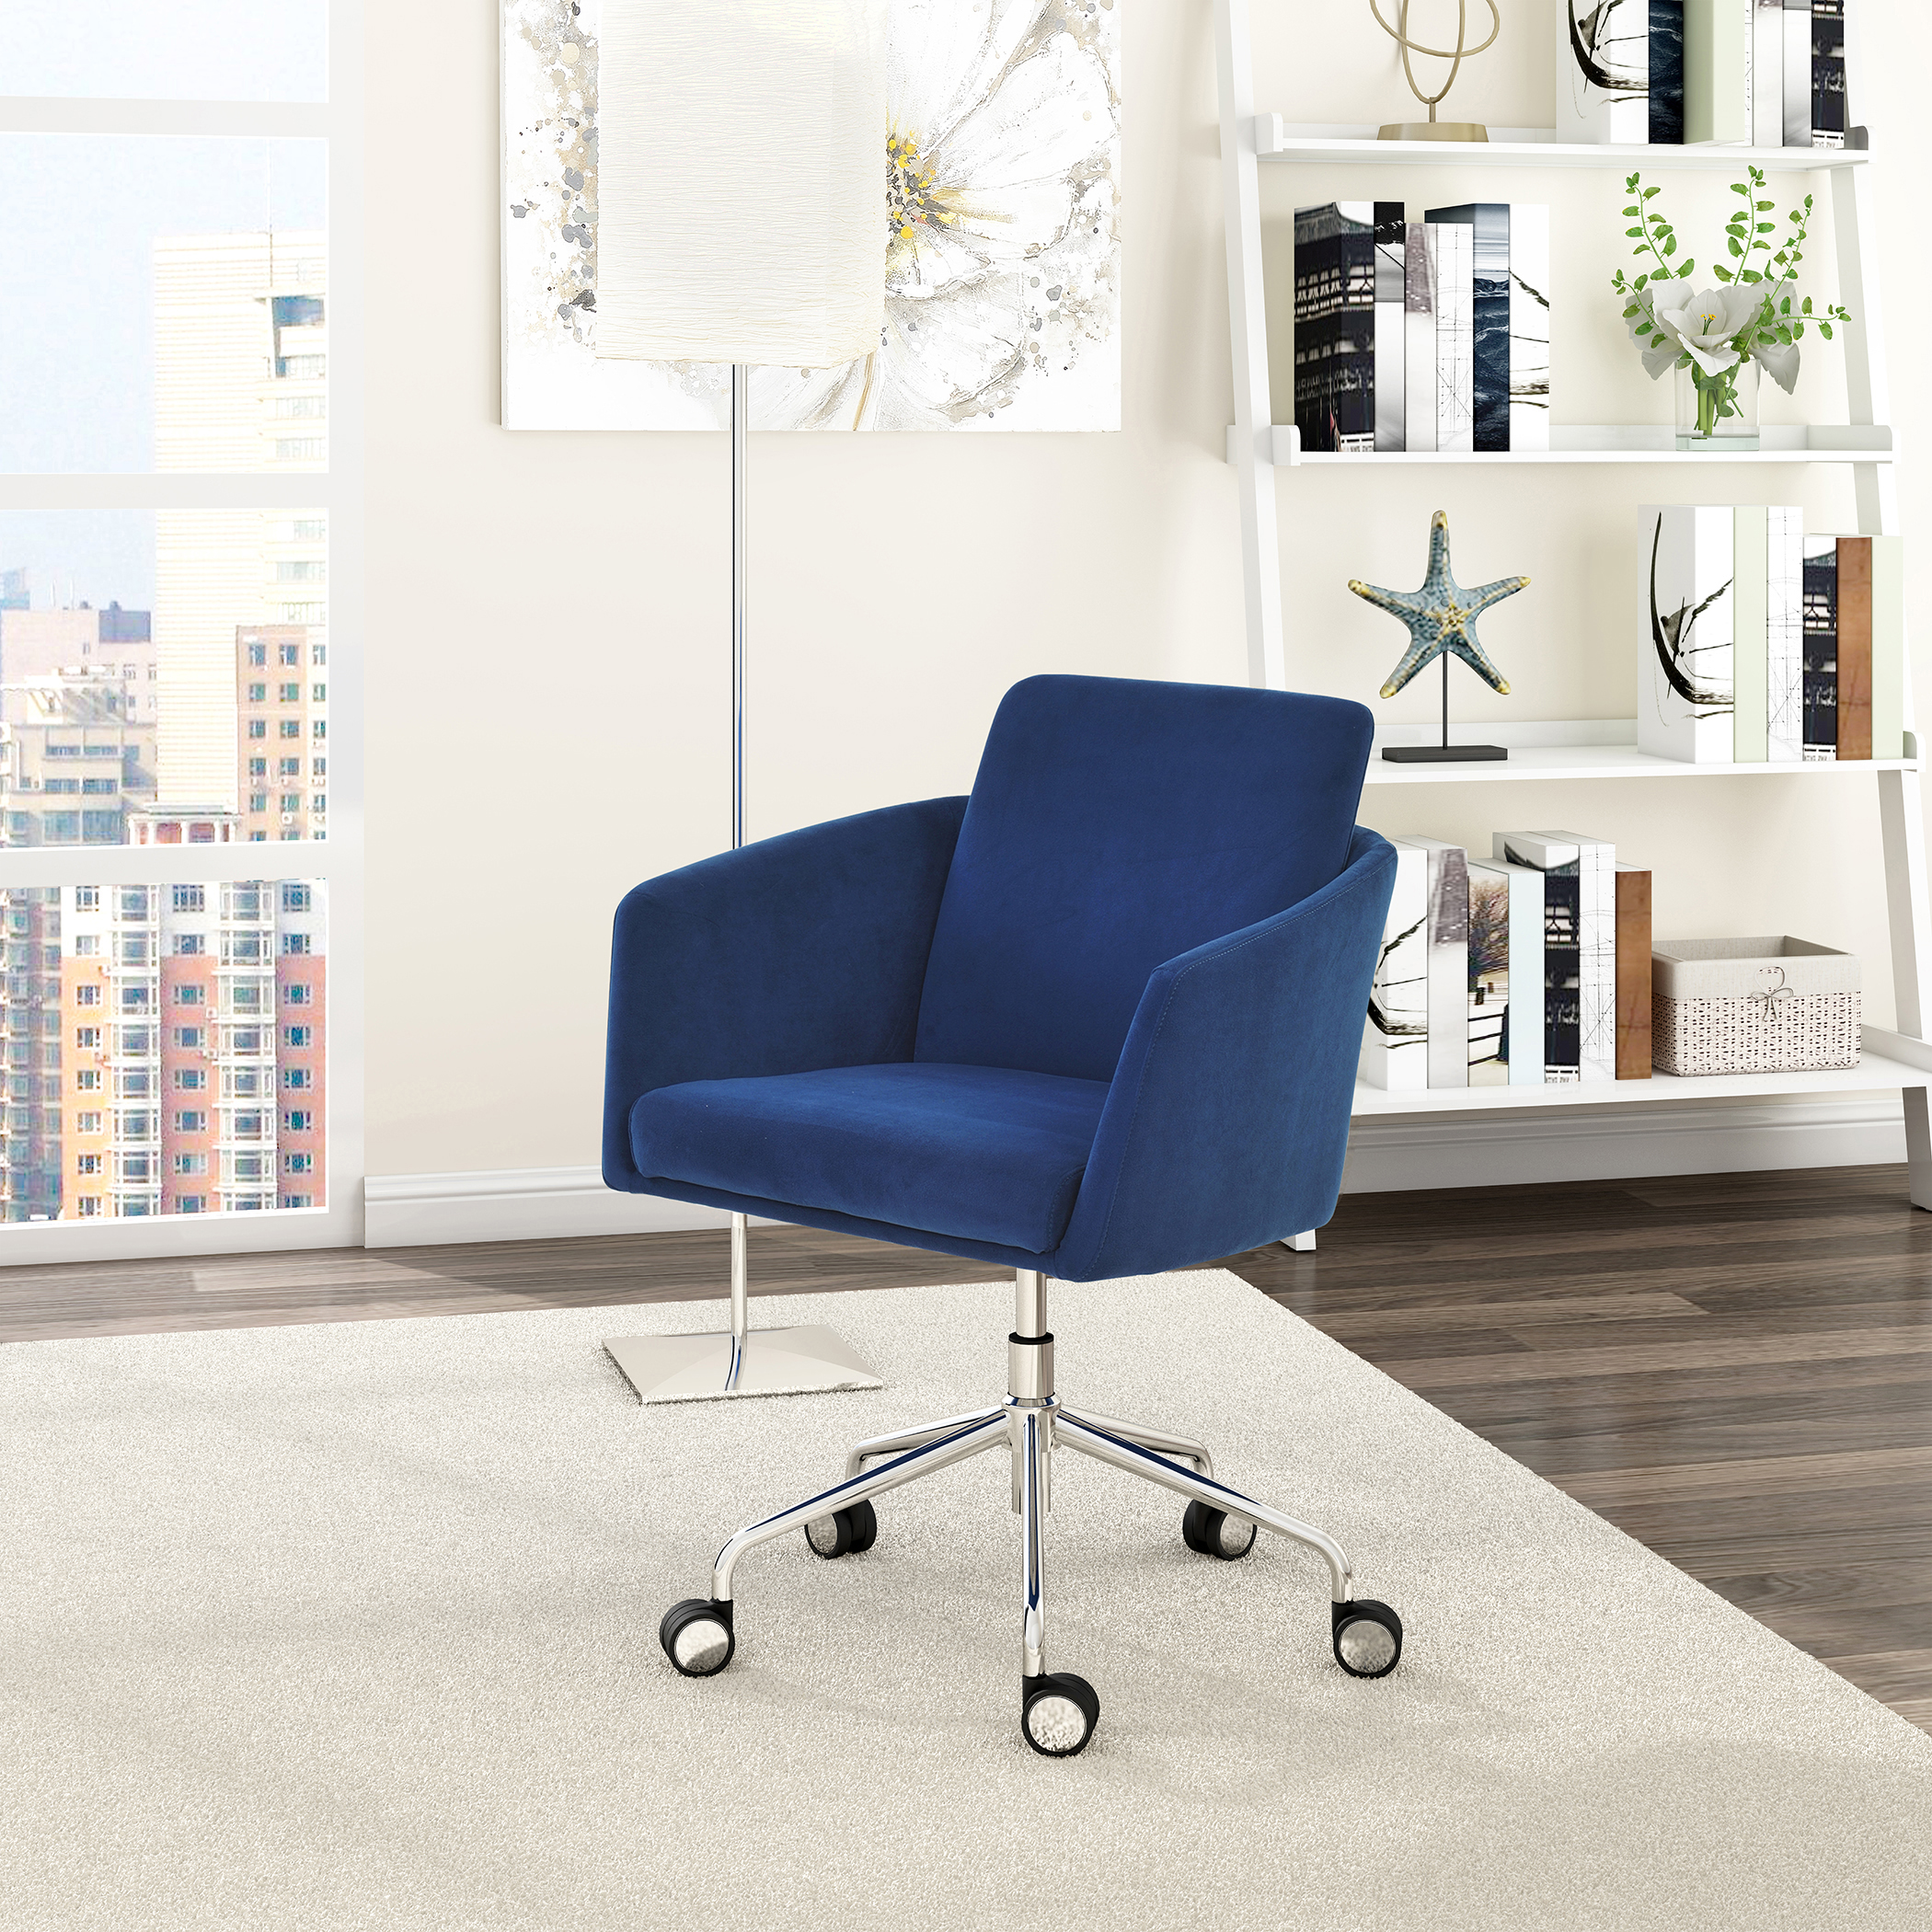 Elle Decor Vevey Mid Back Chair